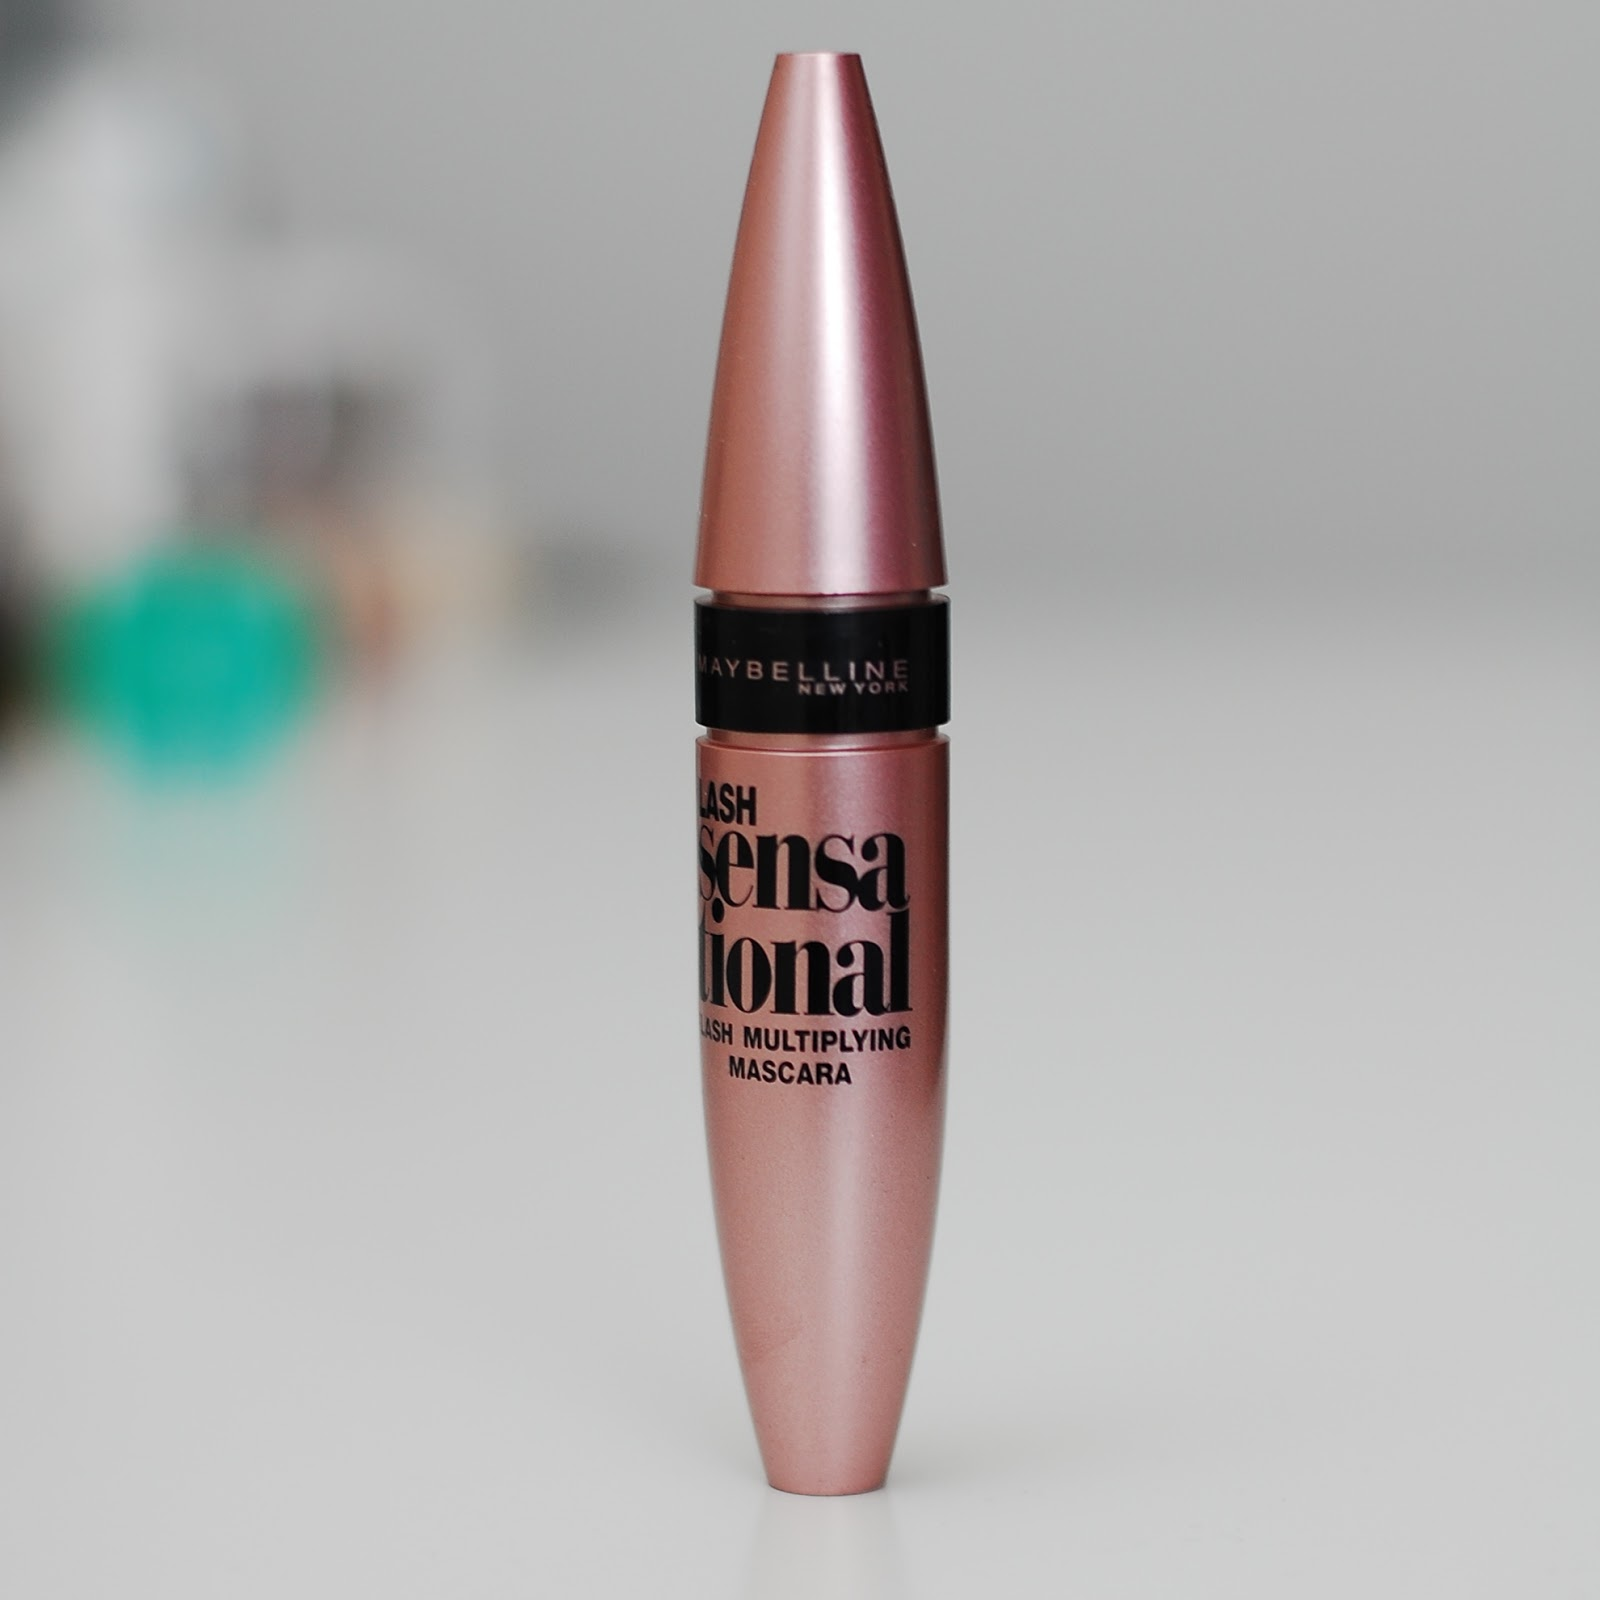 Maybelline Lash Sensational tusz do rzęs maskara